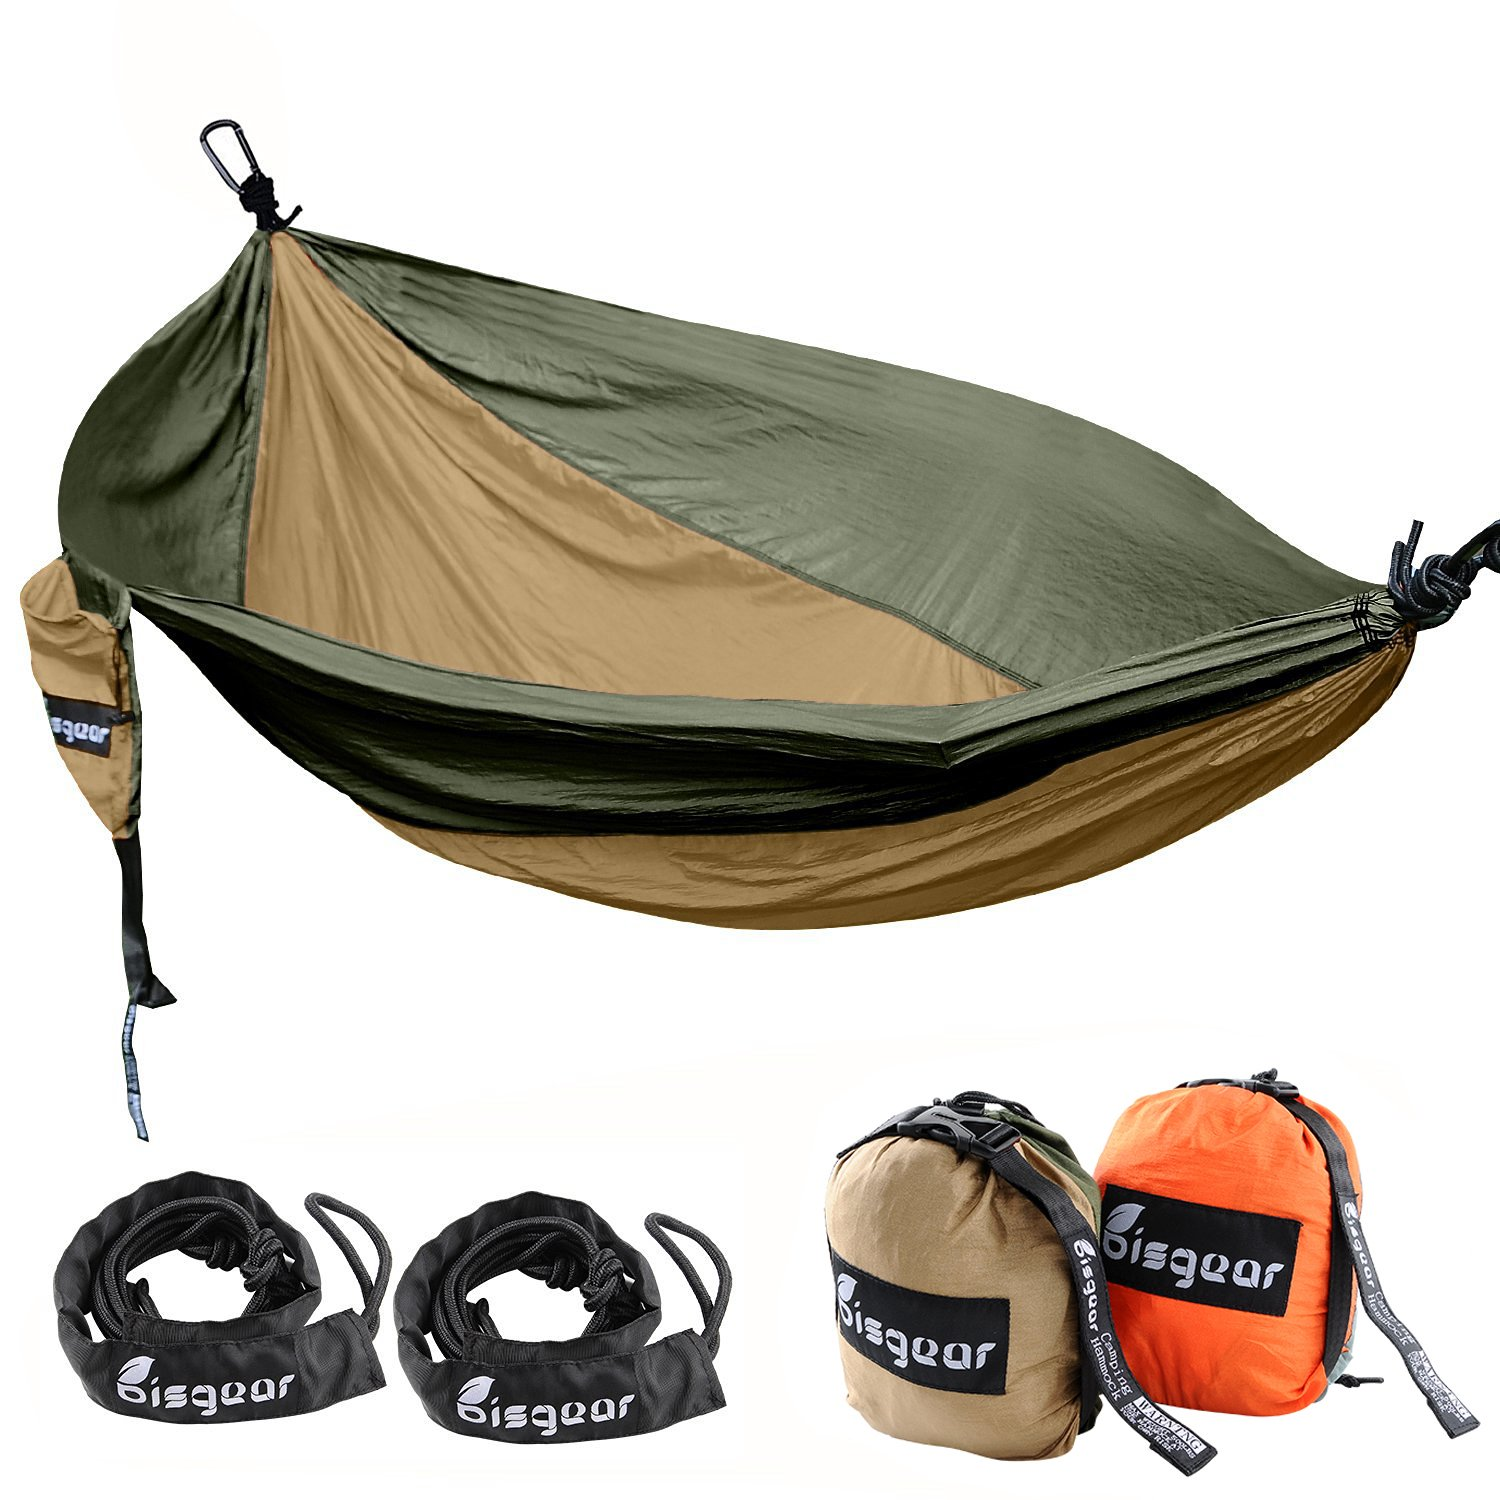 Double Single Camping Hammock Lightweight Image 1